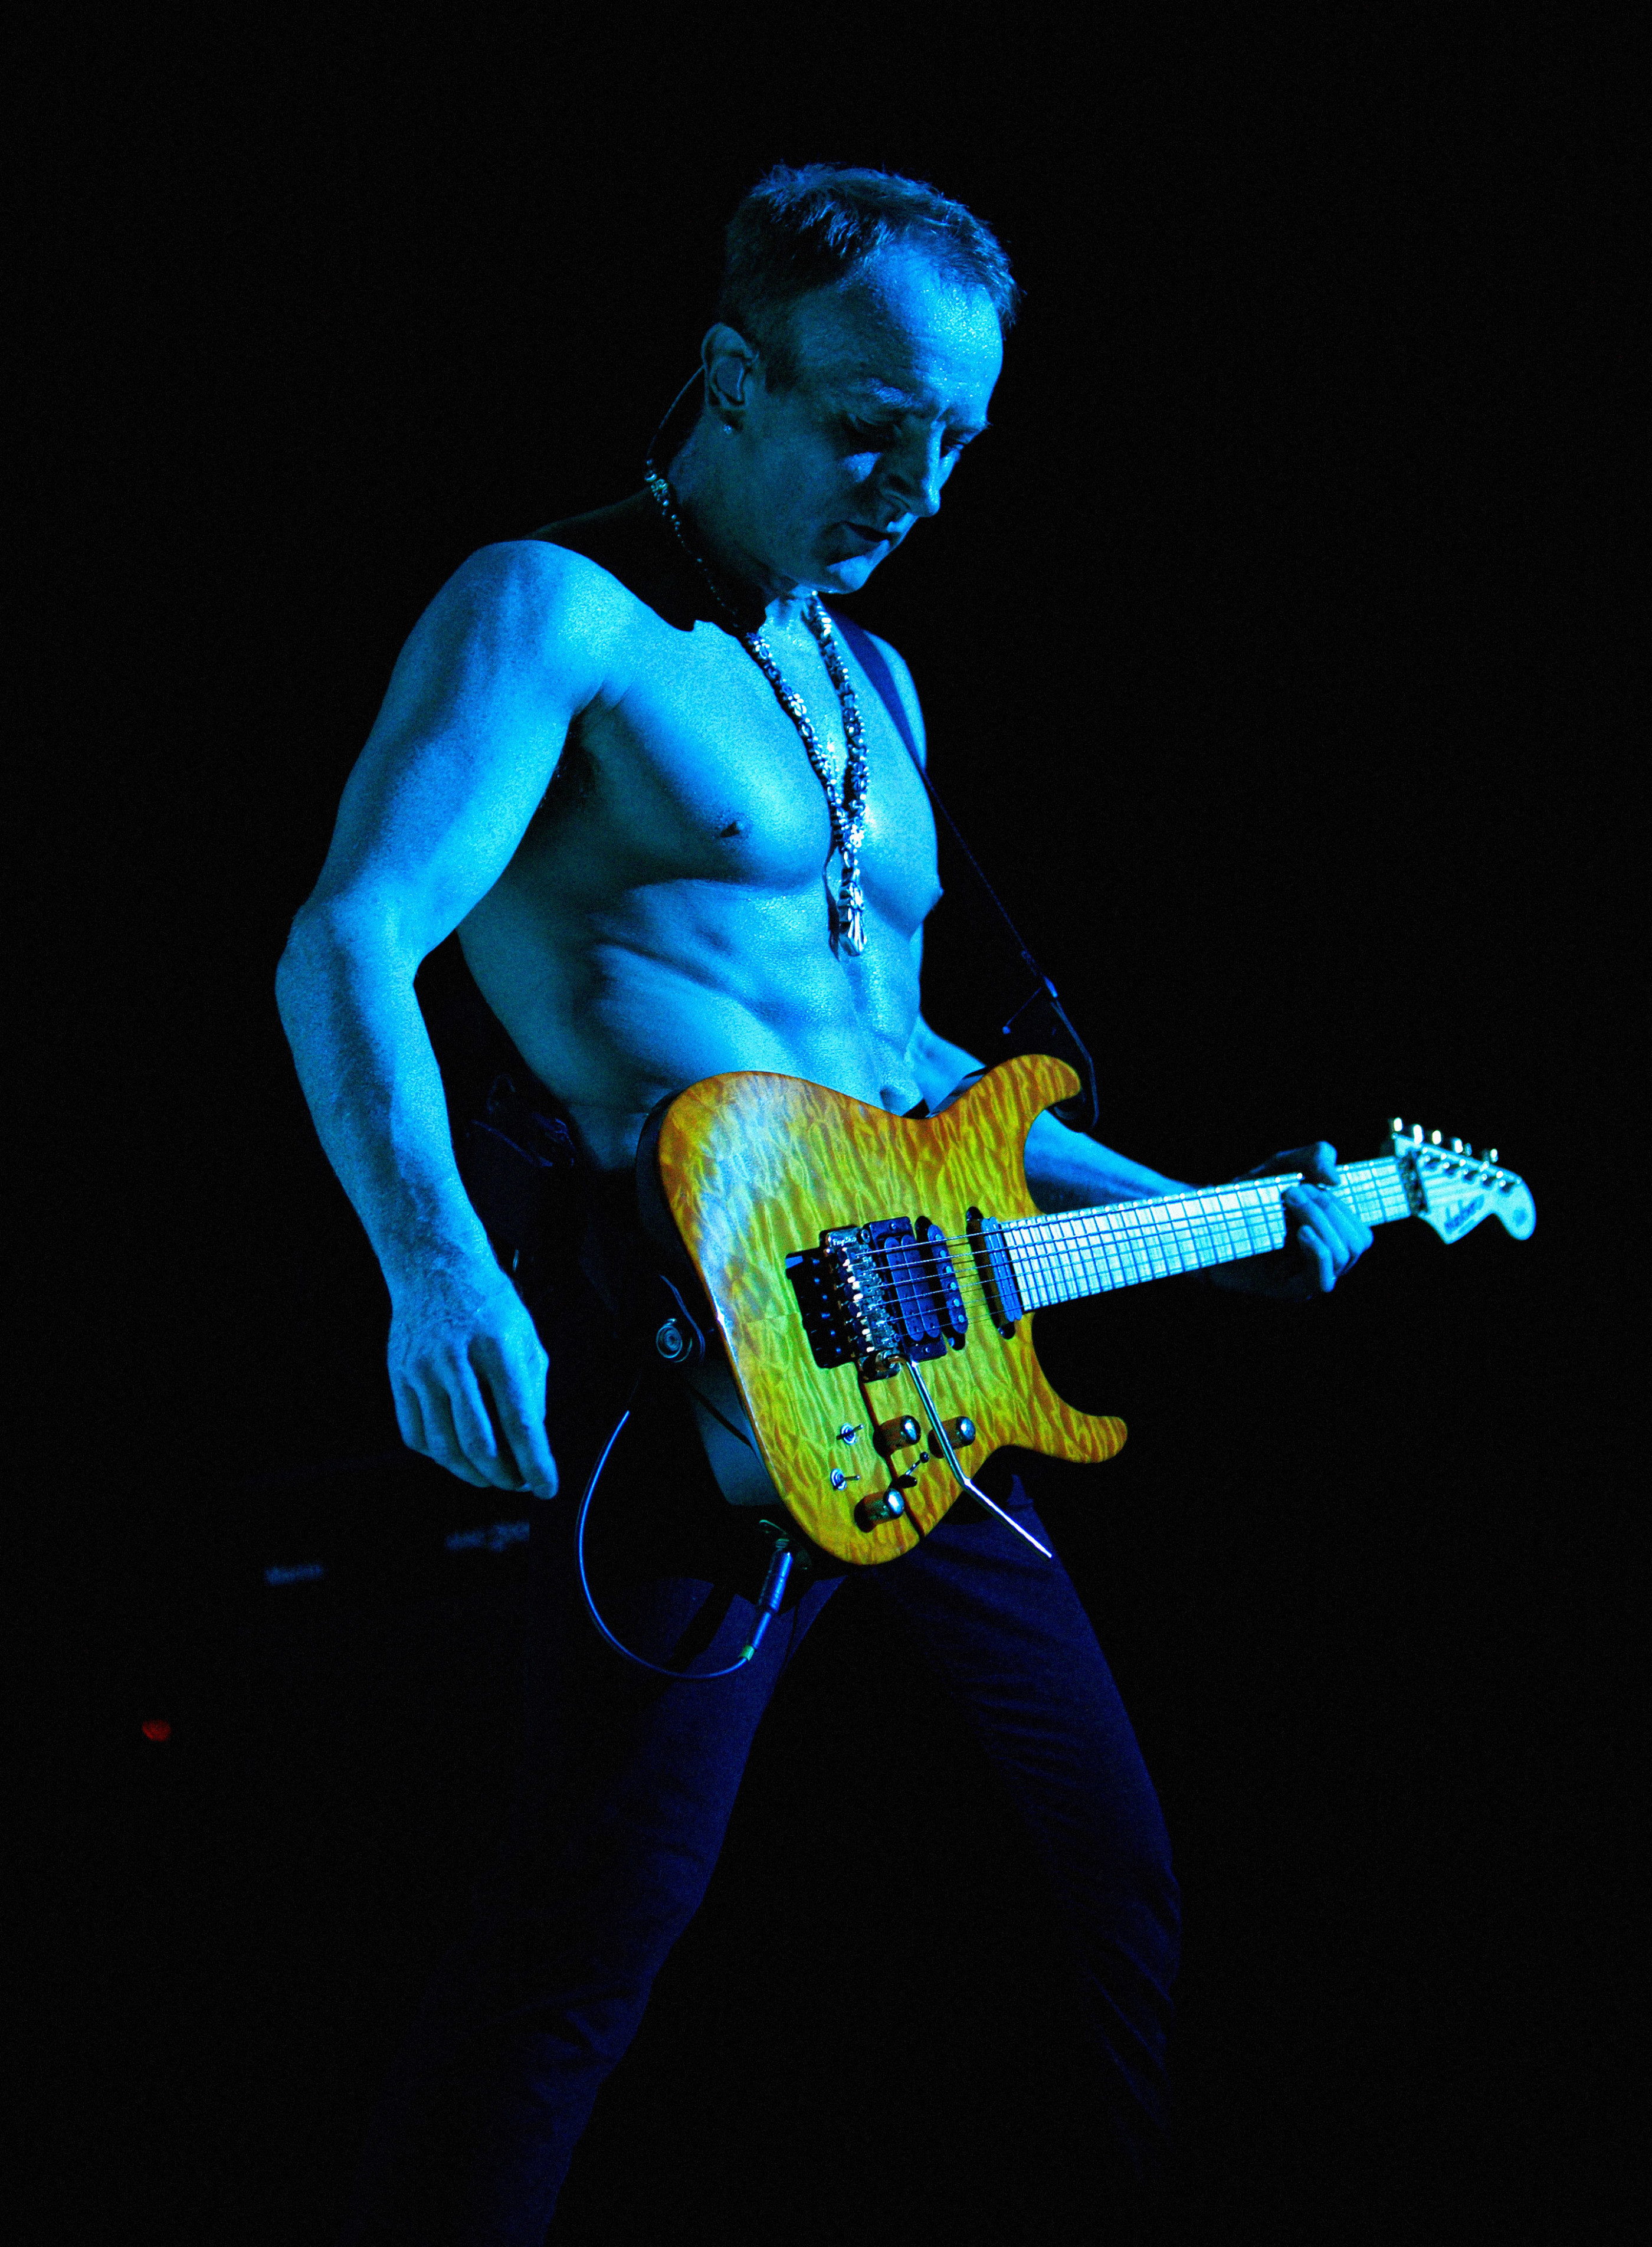 Phil Collen San Antonio 1261 Copyright Ash Newell Photography